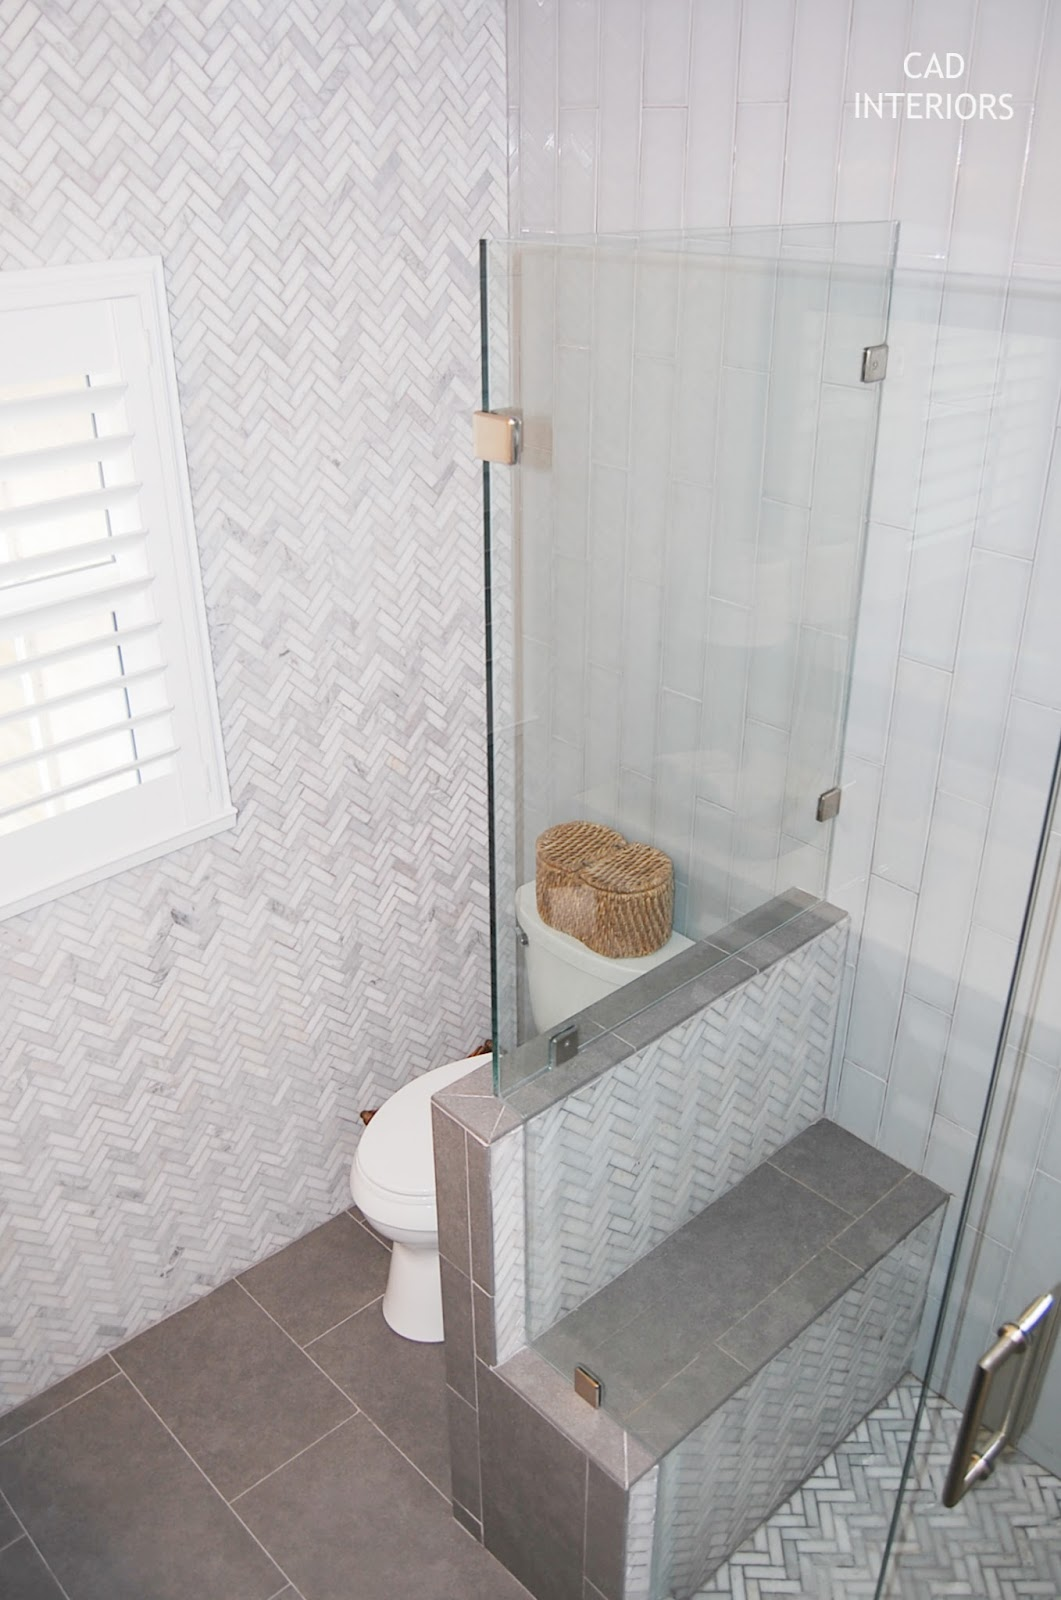 hidden camode pony wall bench new shower herringbone tile subway tile CAD INTERIORS main bathroom renovation